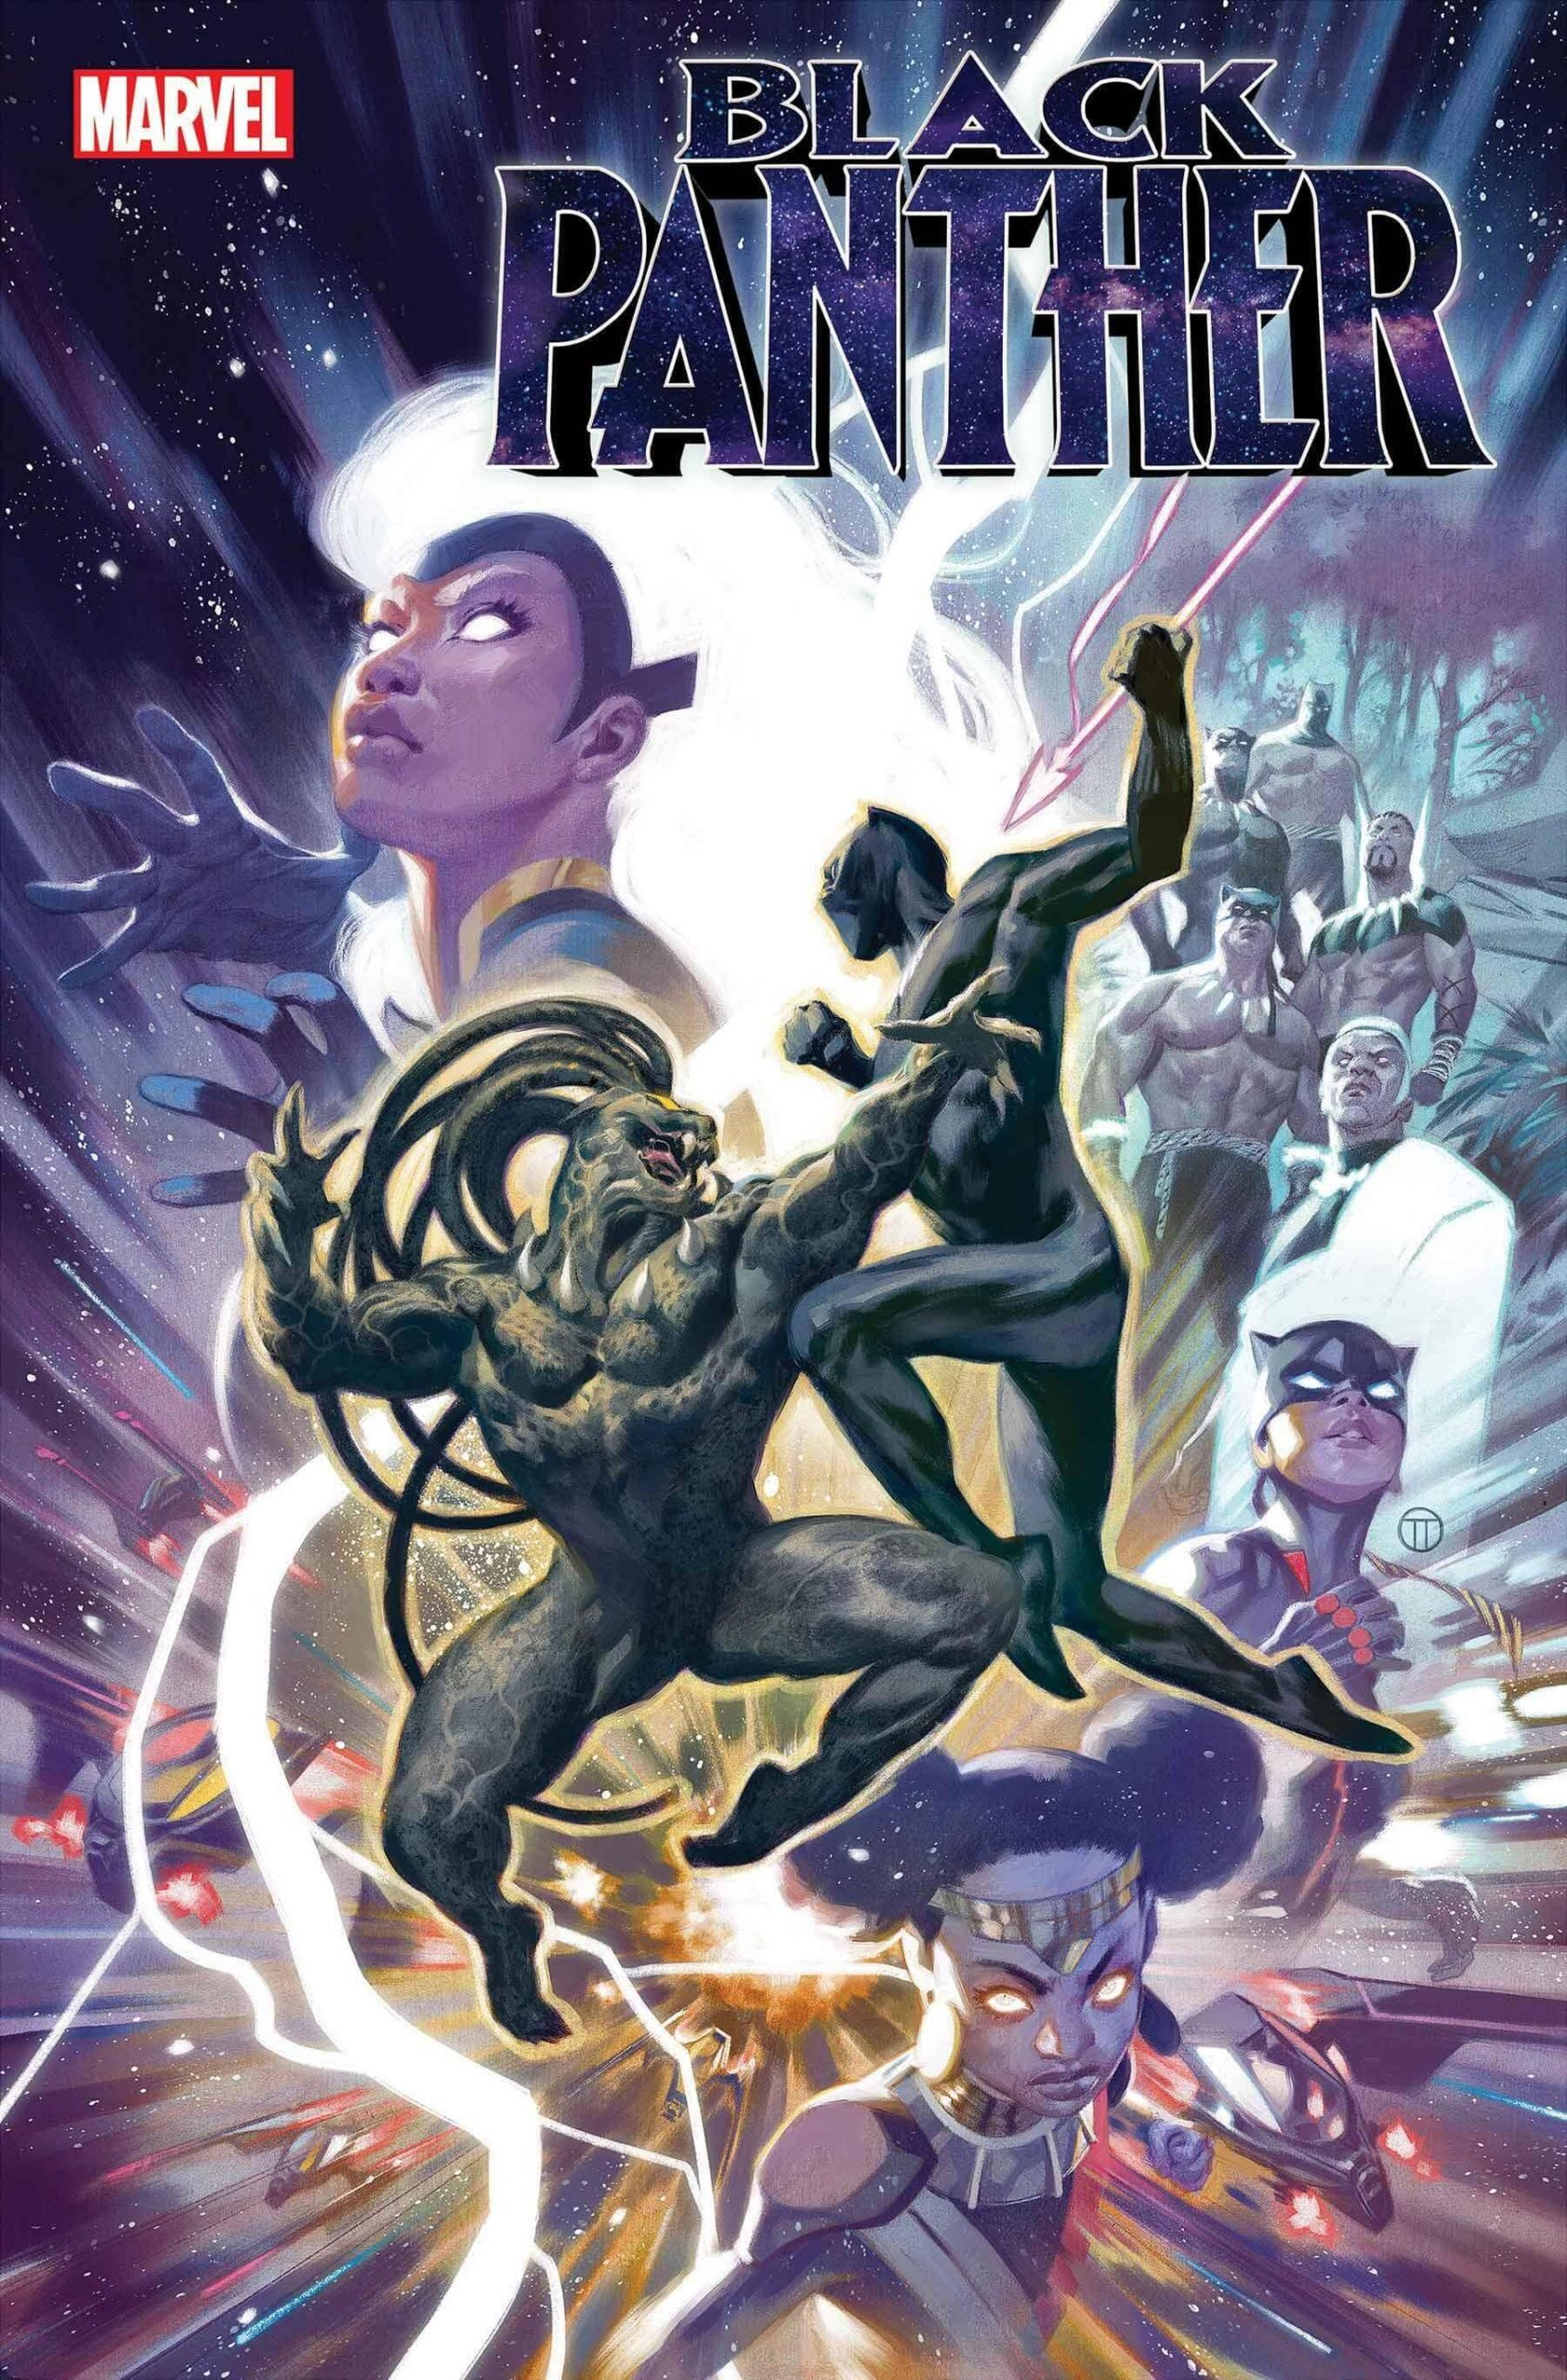 BLACK PANTHER #23 variant cover by Julian Totino Tedesco